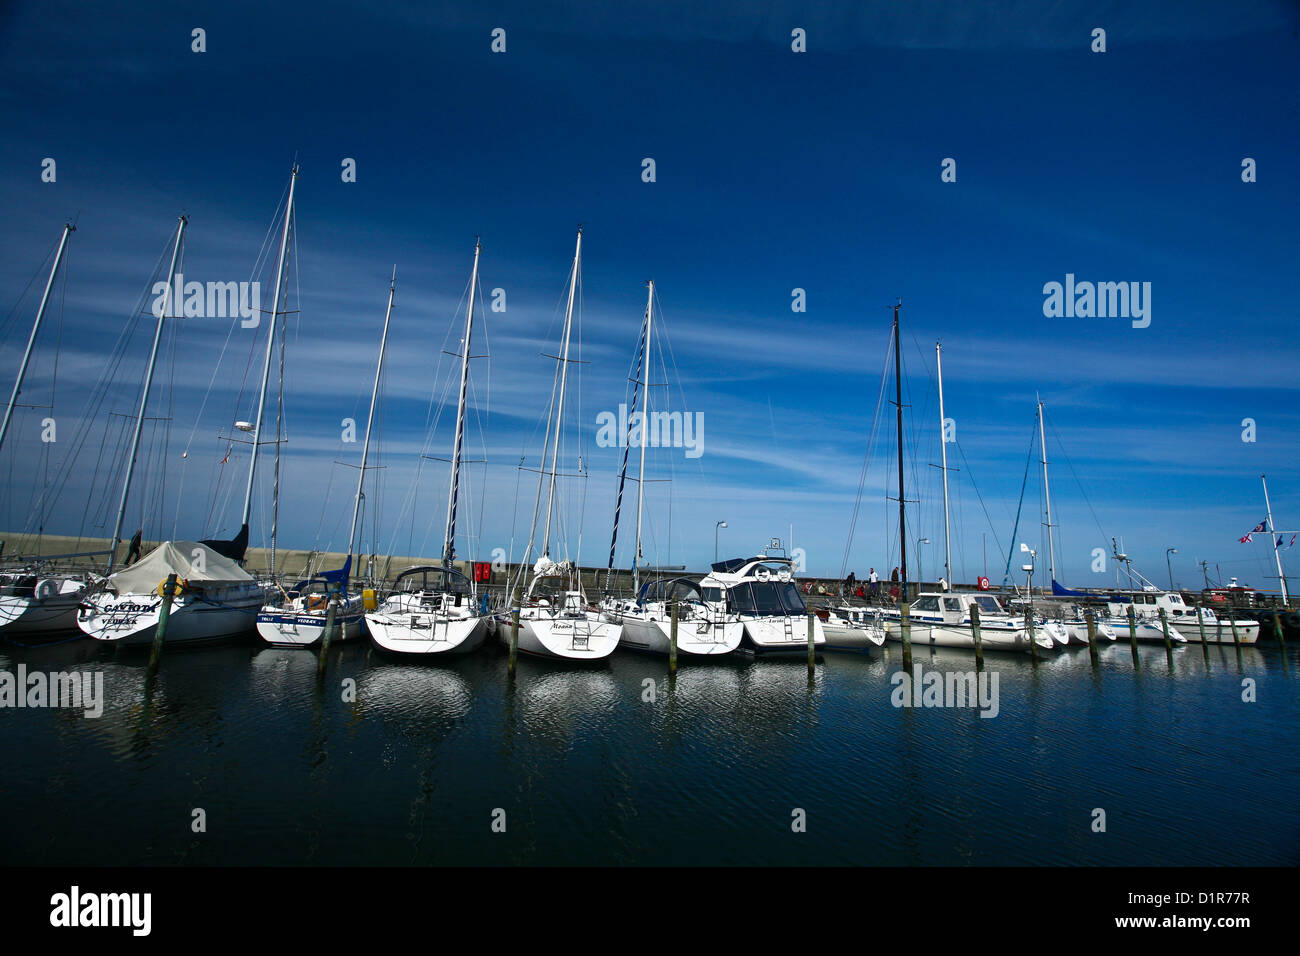 Vedbæk have, the harbor of the town situated north from copenhagen - Stock Image